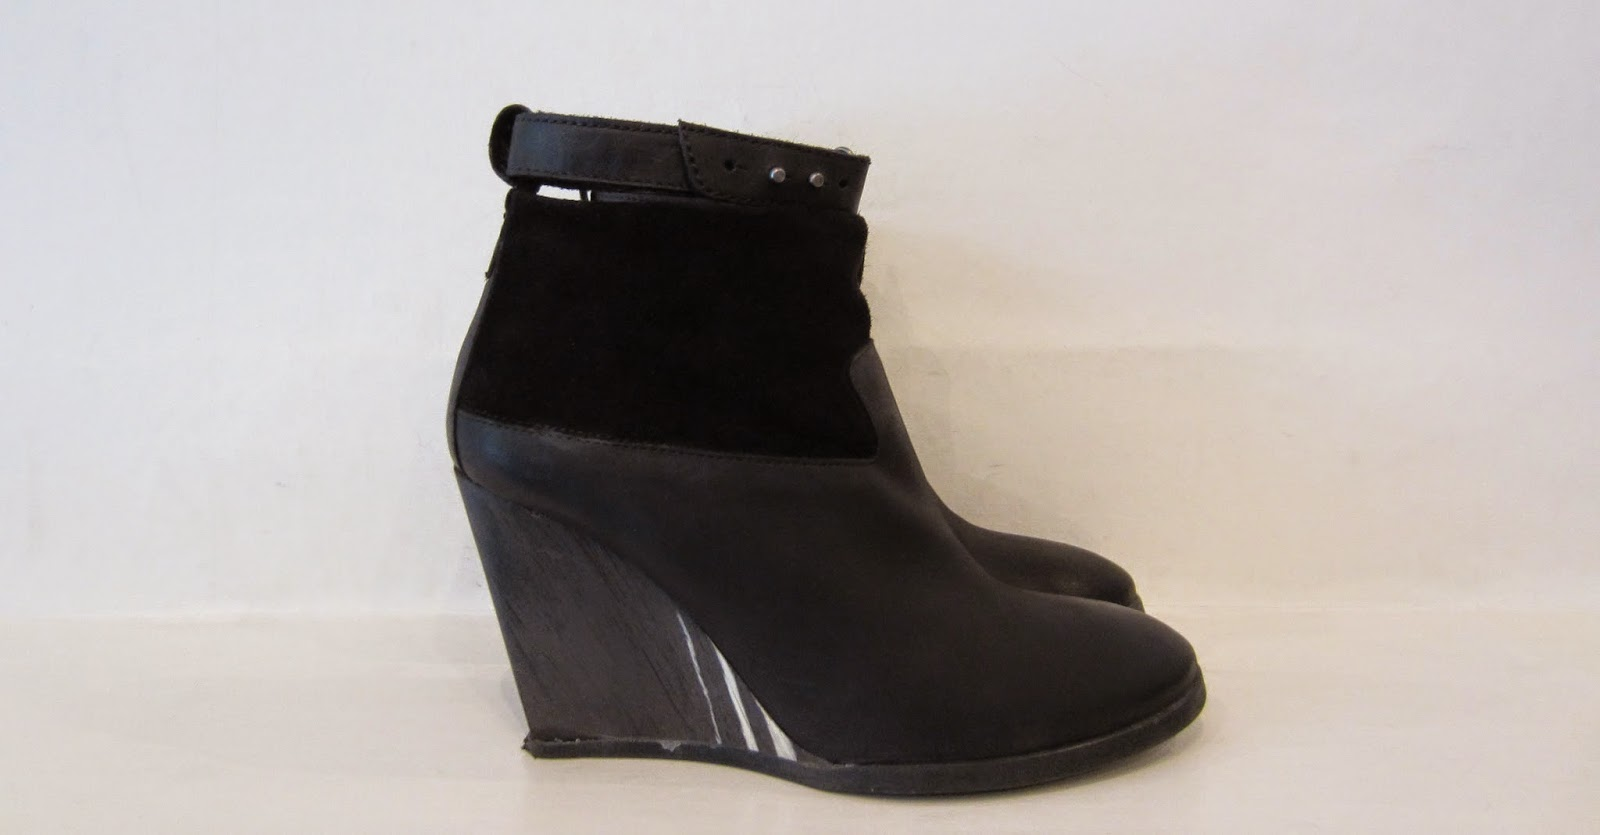 All Saints Black Leather & Suede Wedge Hell Boots